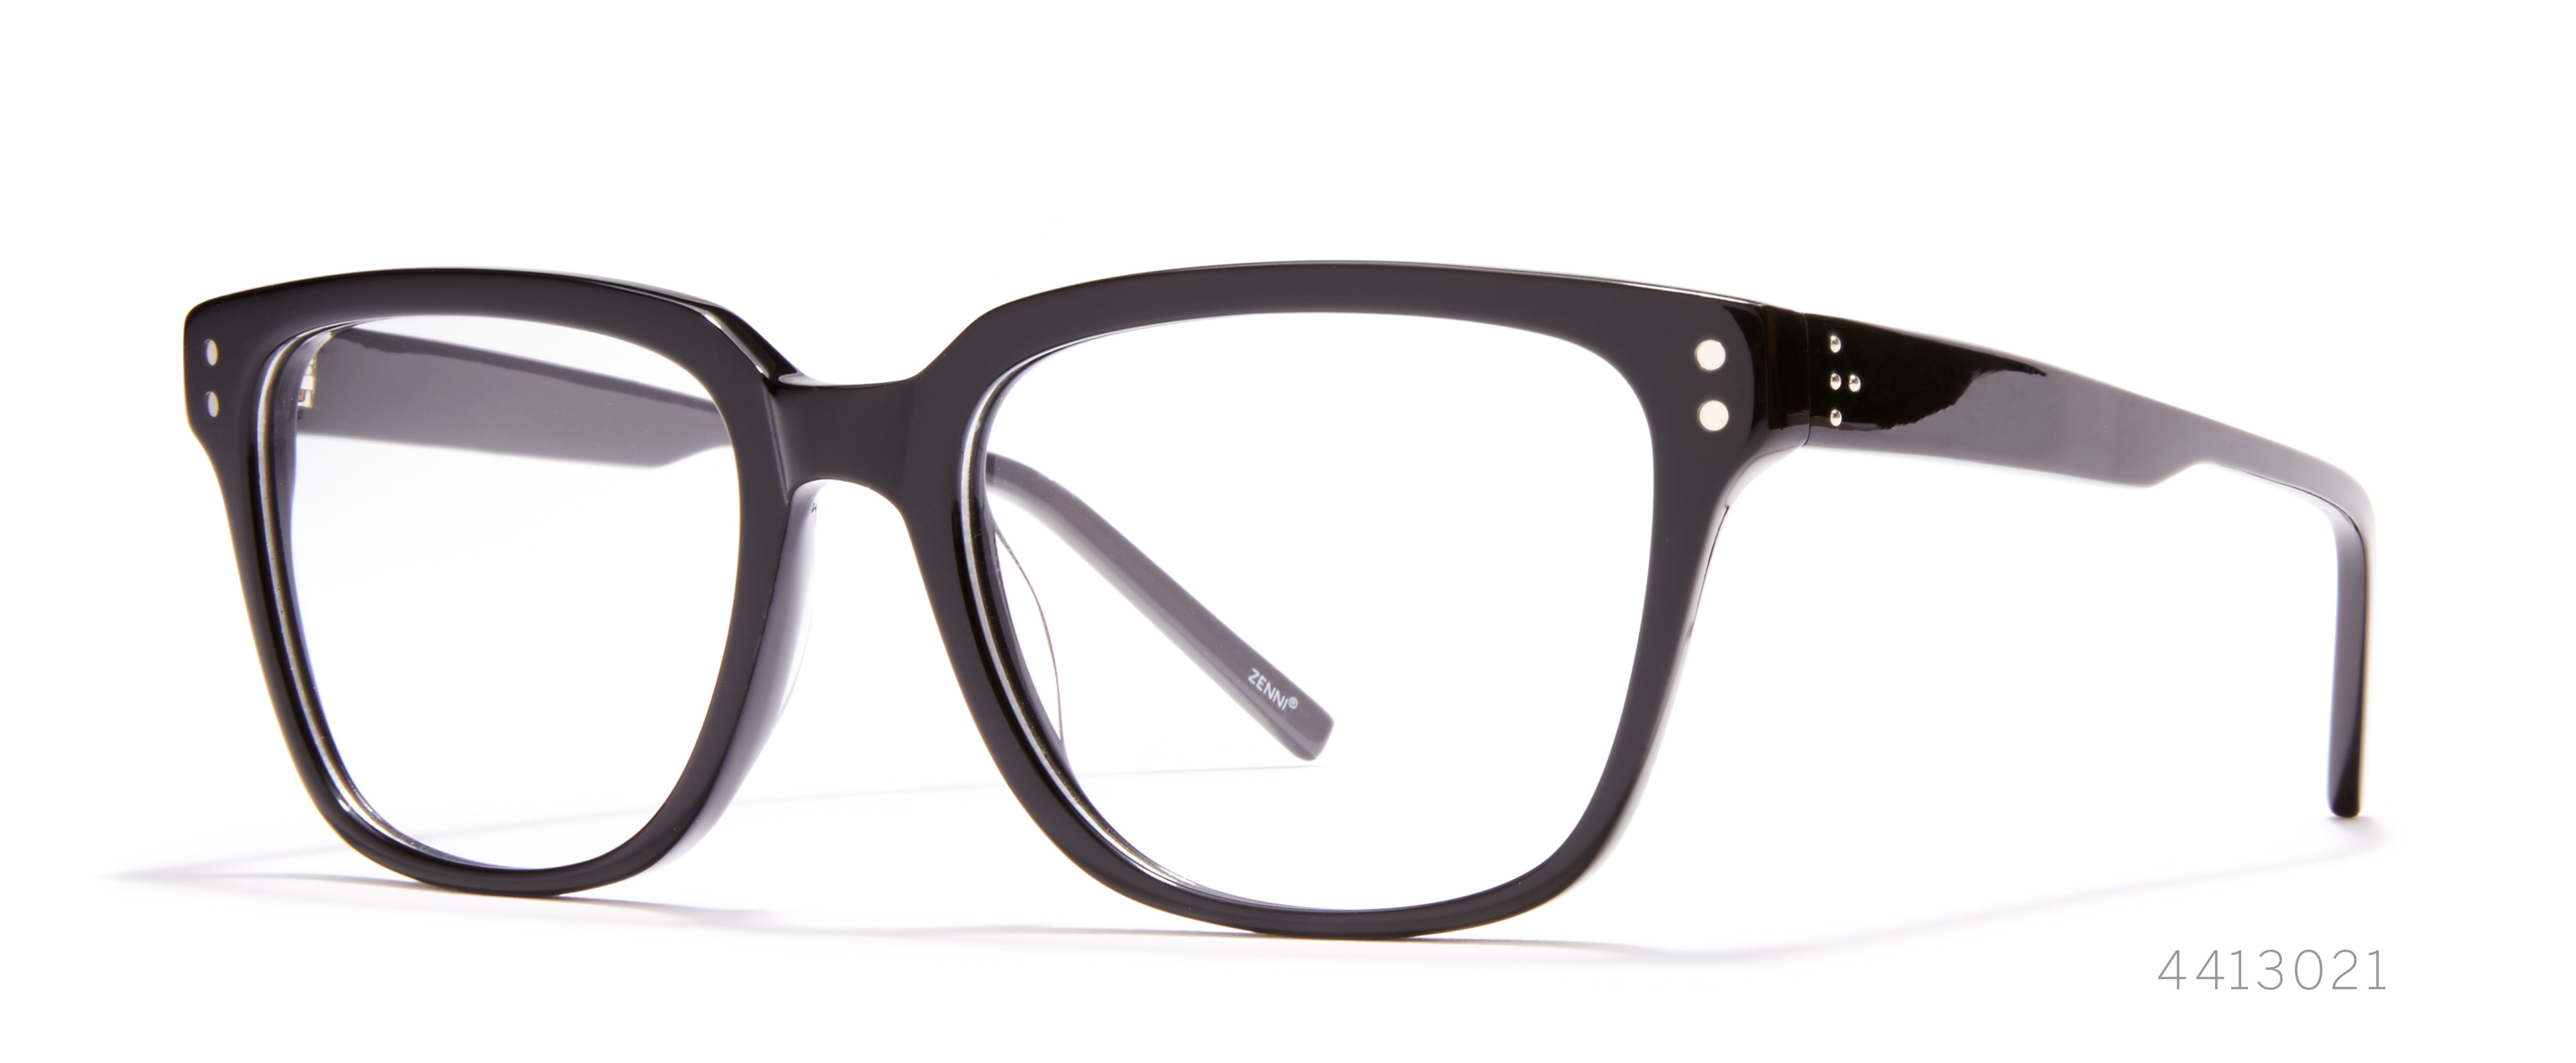 Glasses as a Fashion Statement | Zenni Optical